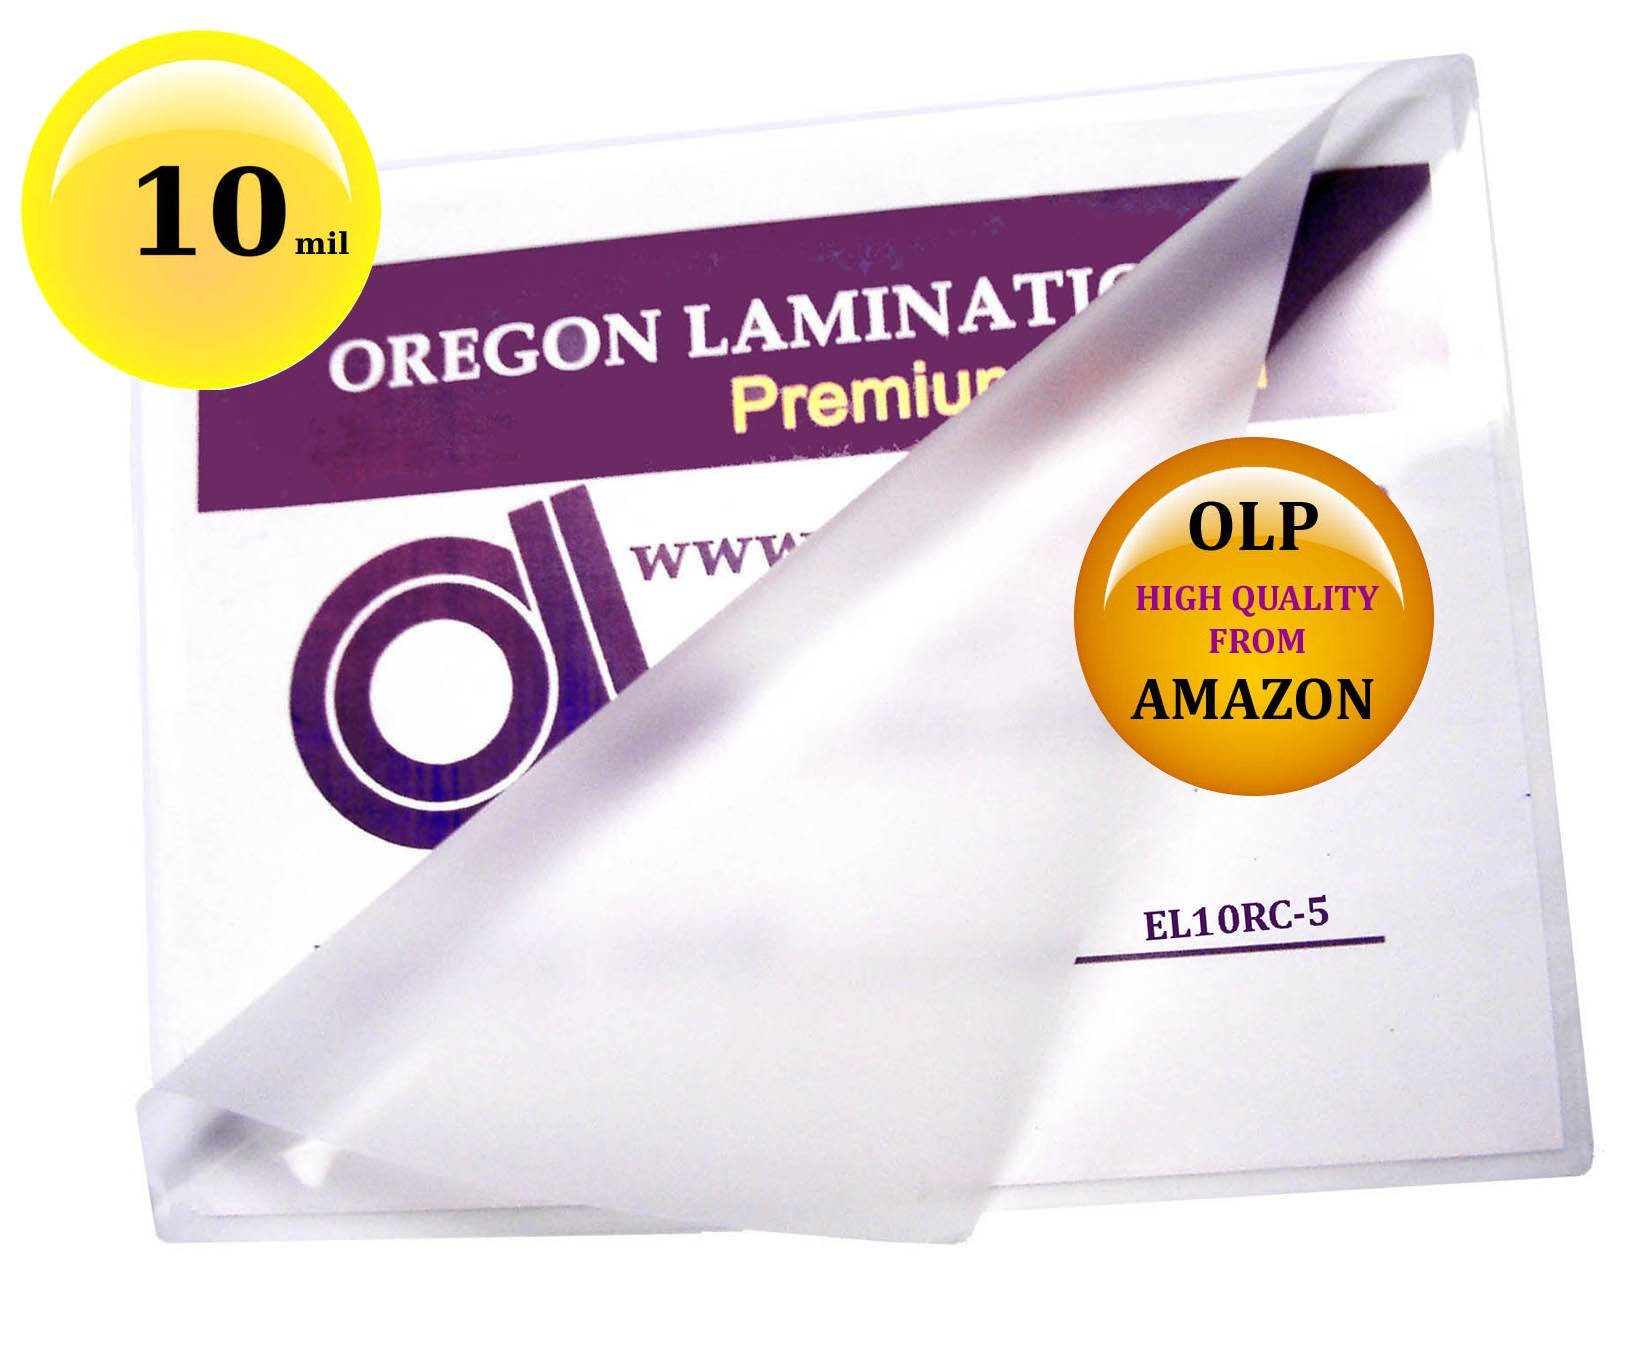 Qty 250 10 Mil Menu Laminating Pouches 12 x 18 Hot 12x18 by Oregon Lamination Premium